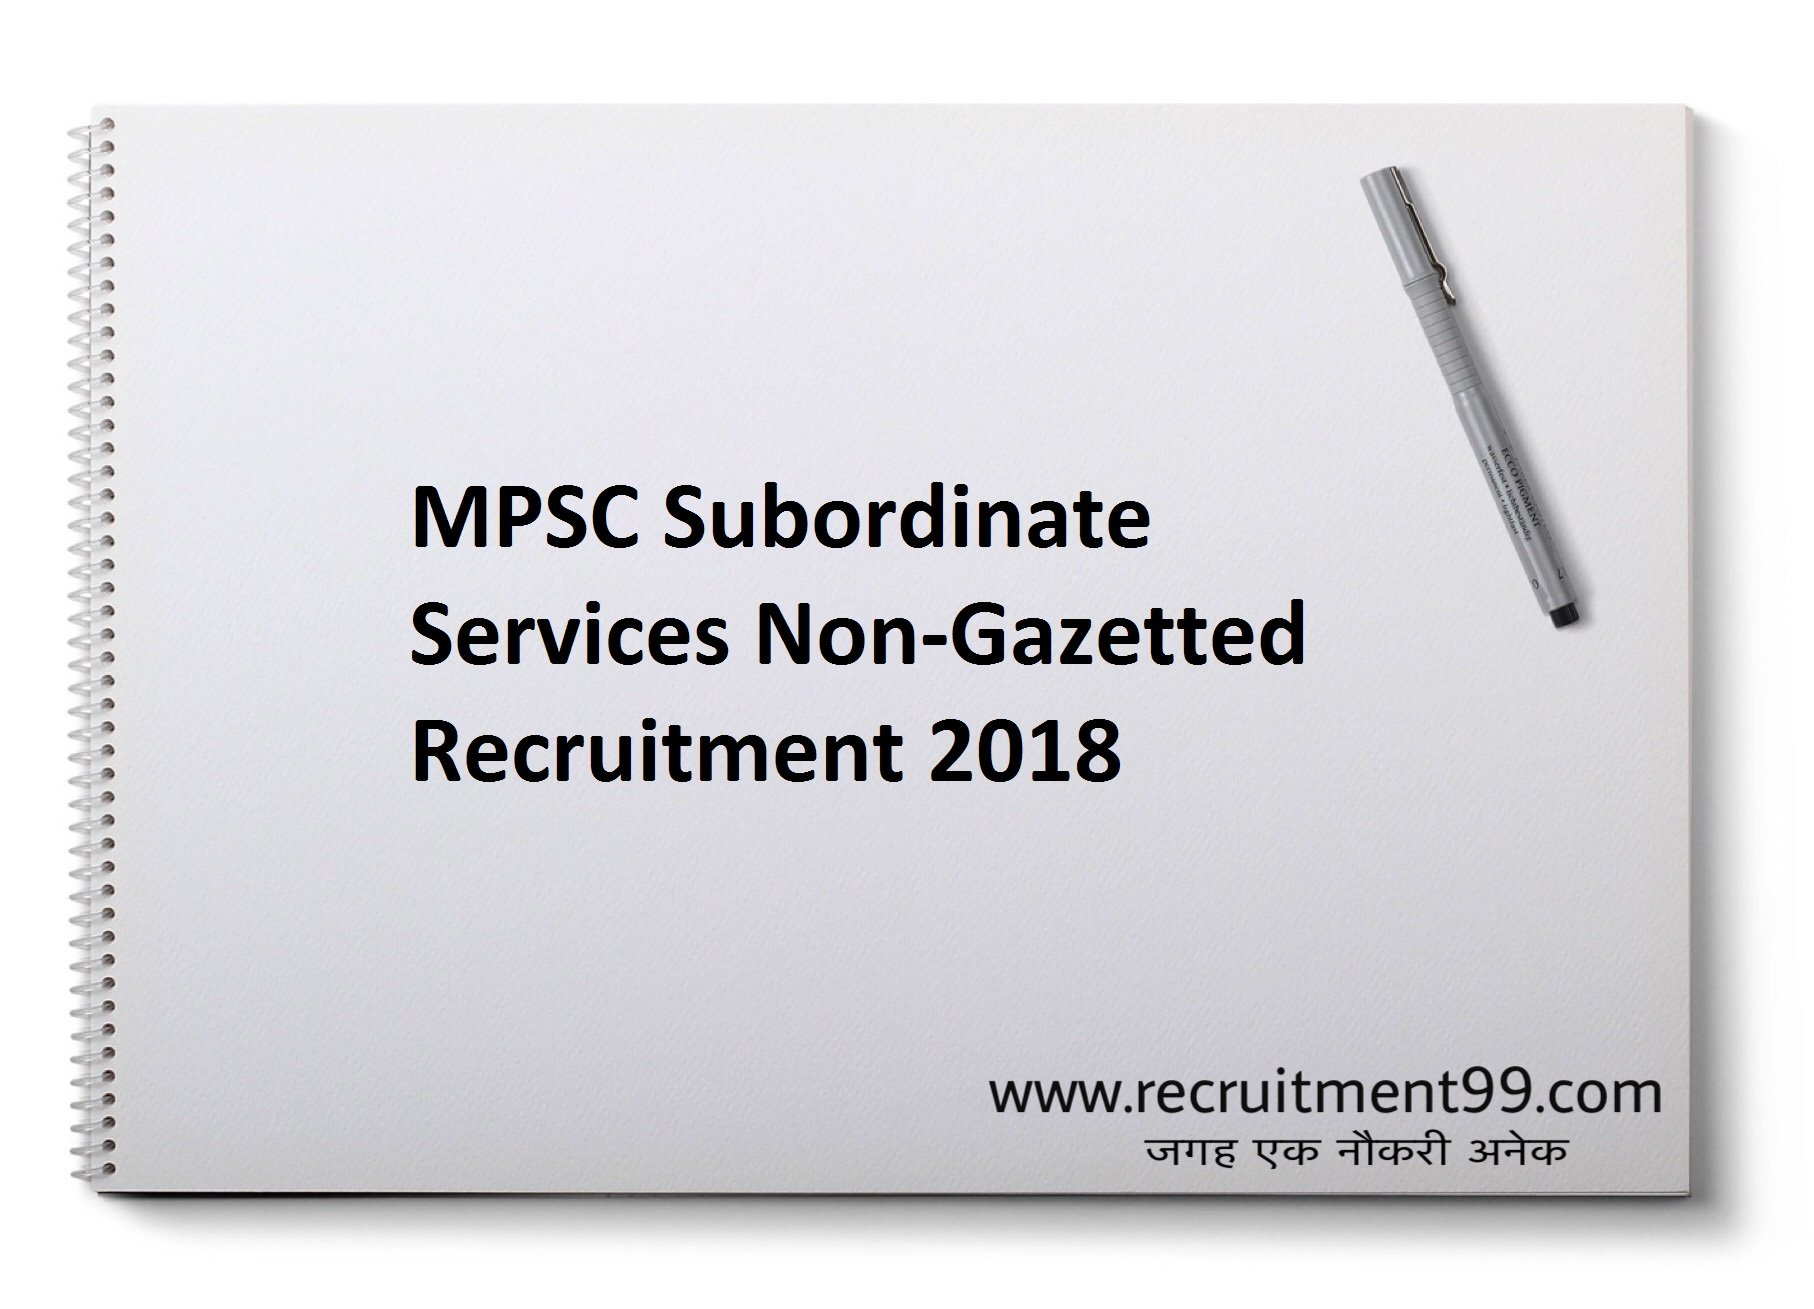 MPSC Subordinate Services Non-Gazetted, Group-B Recruitment, Admit Card & Result 2018